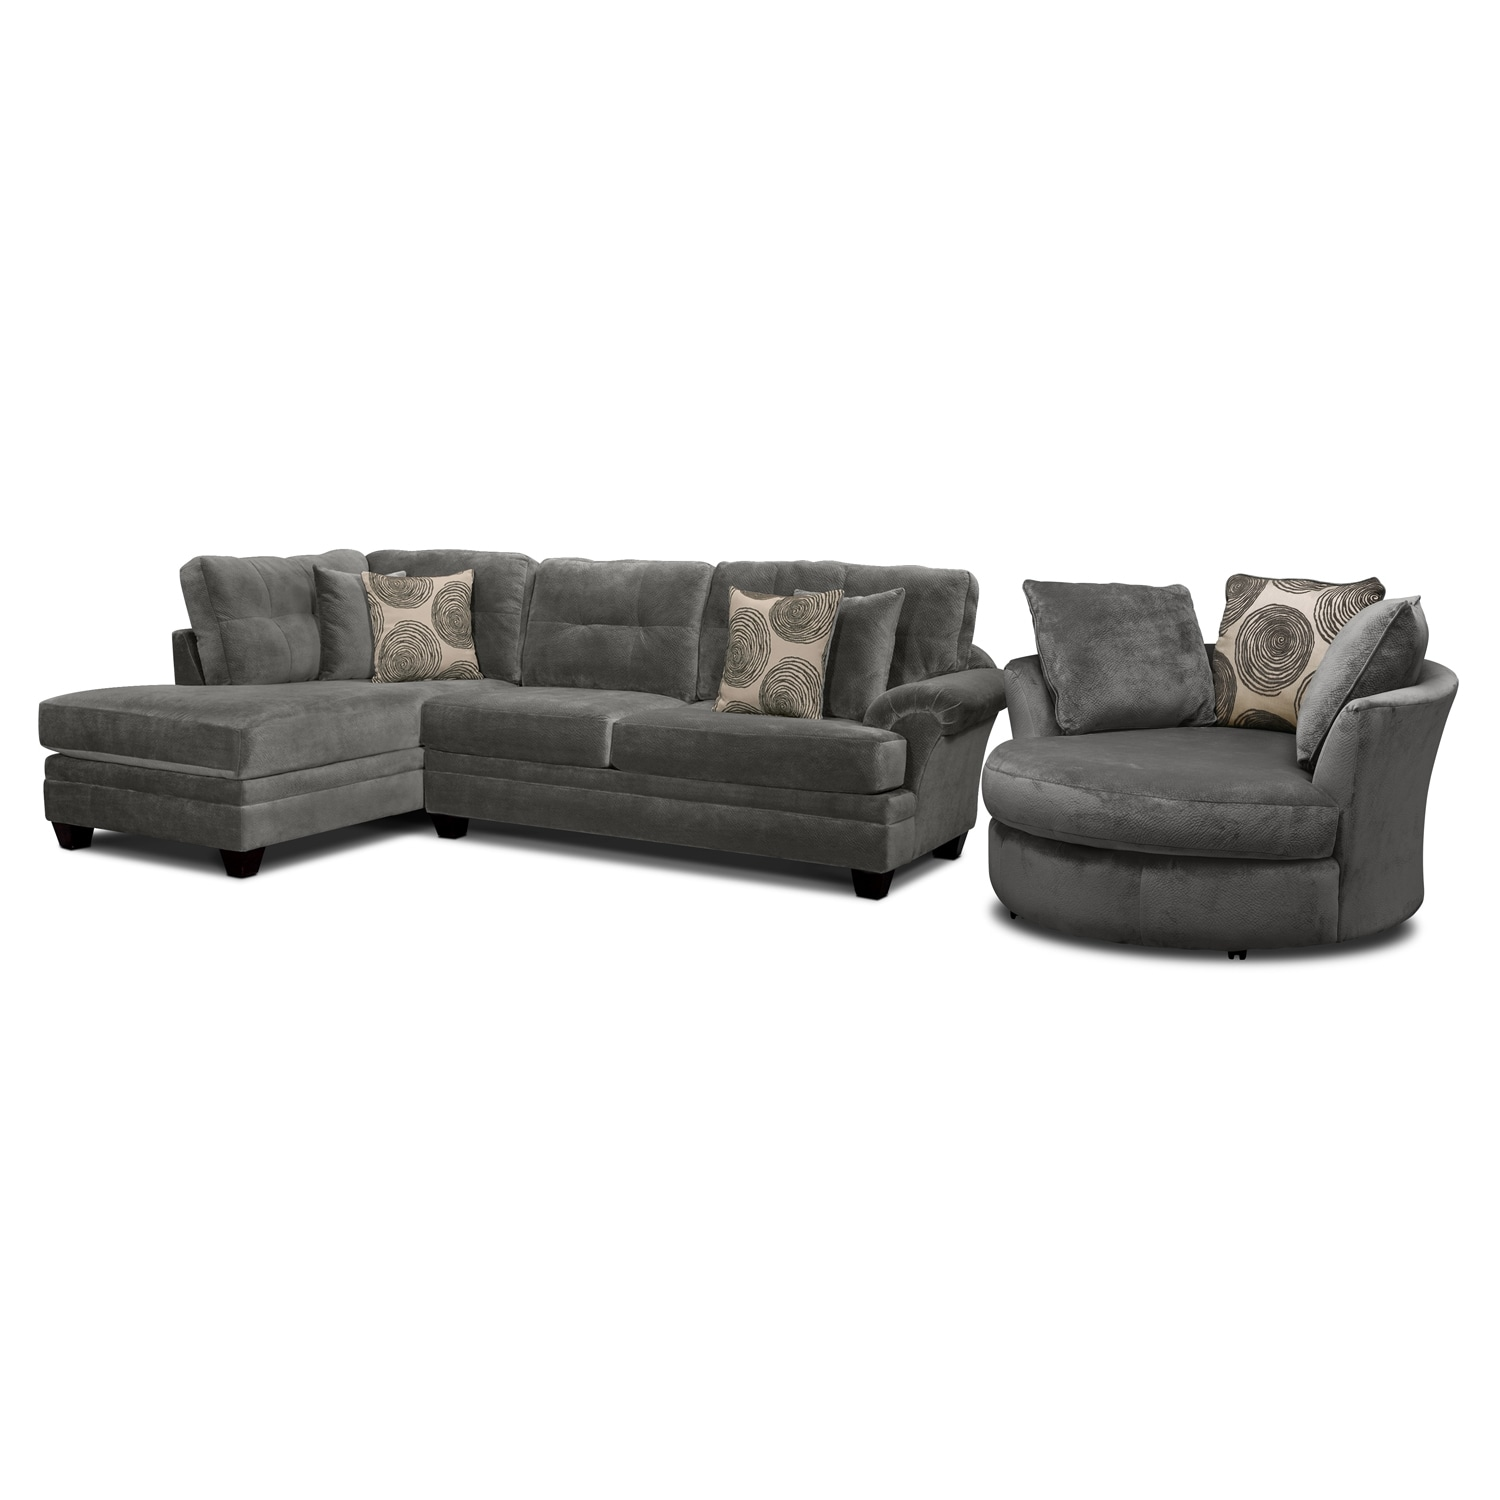 Cordelle 2 Piece Sectional With Left Facing Chaise And Swivel Chair Set    Gray